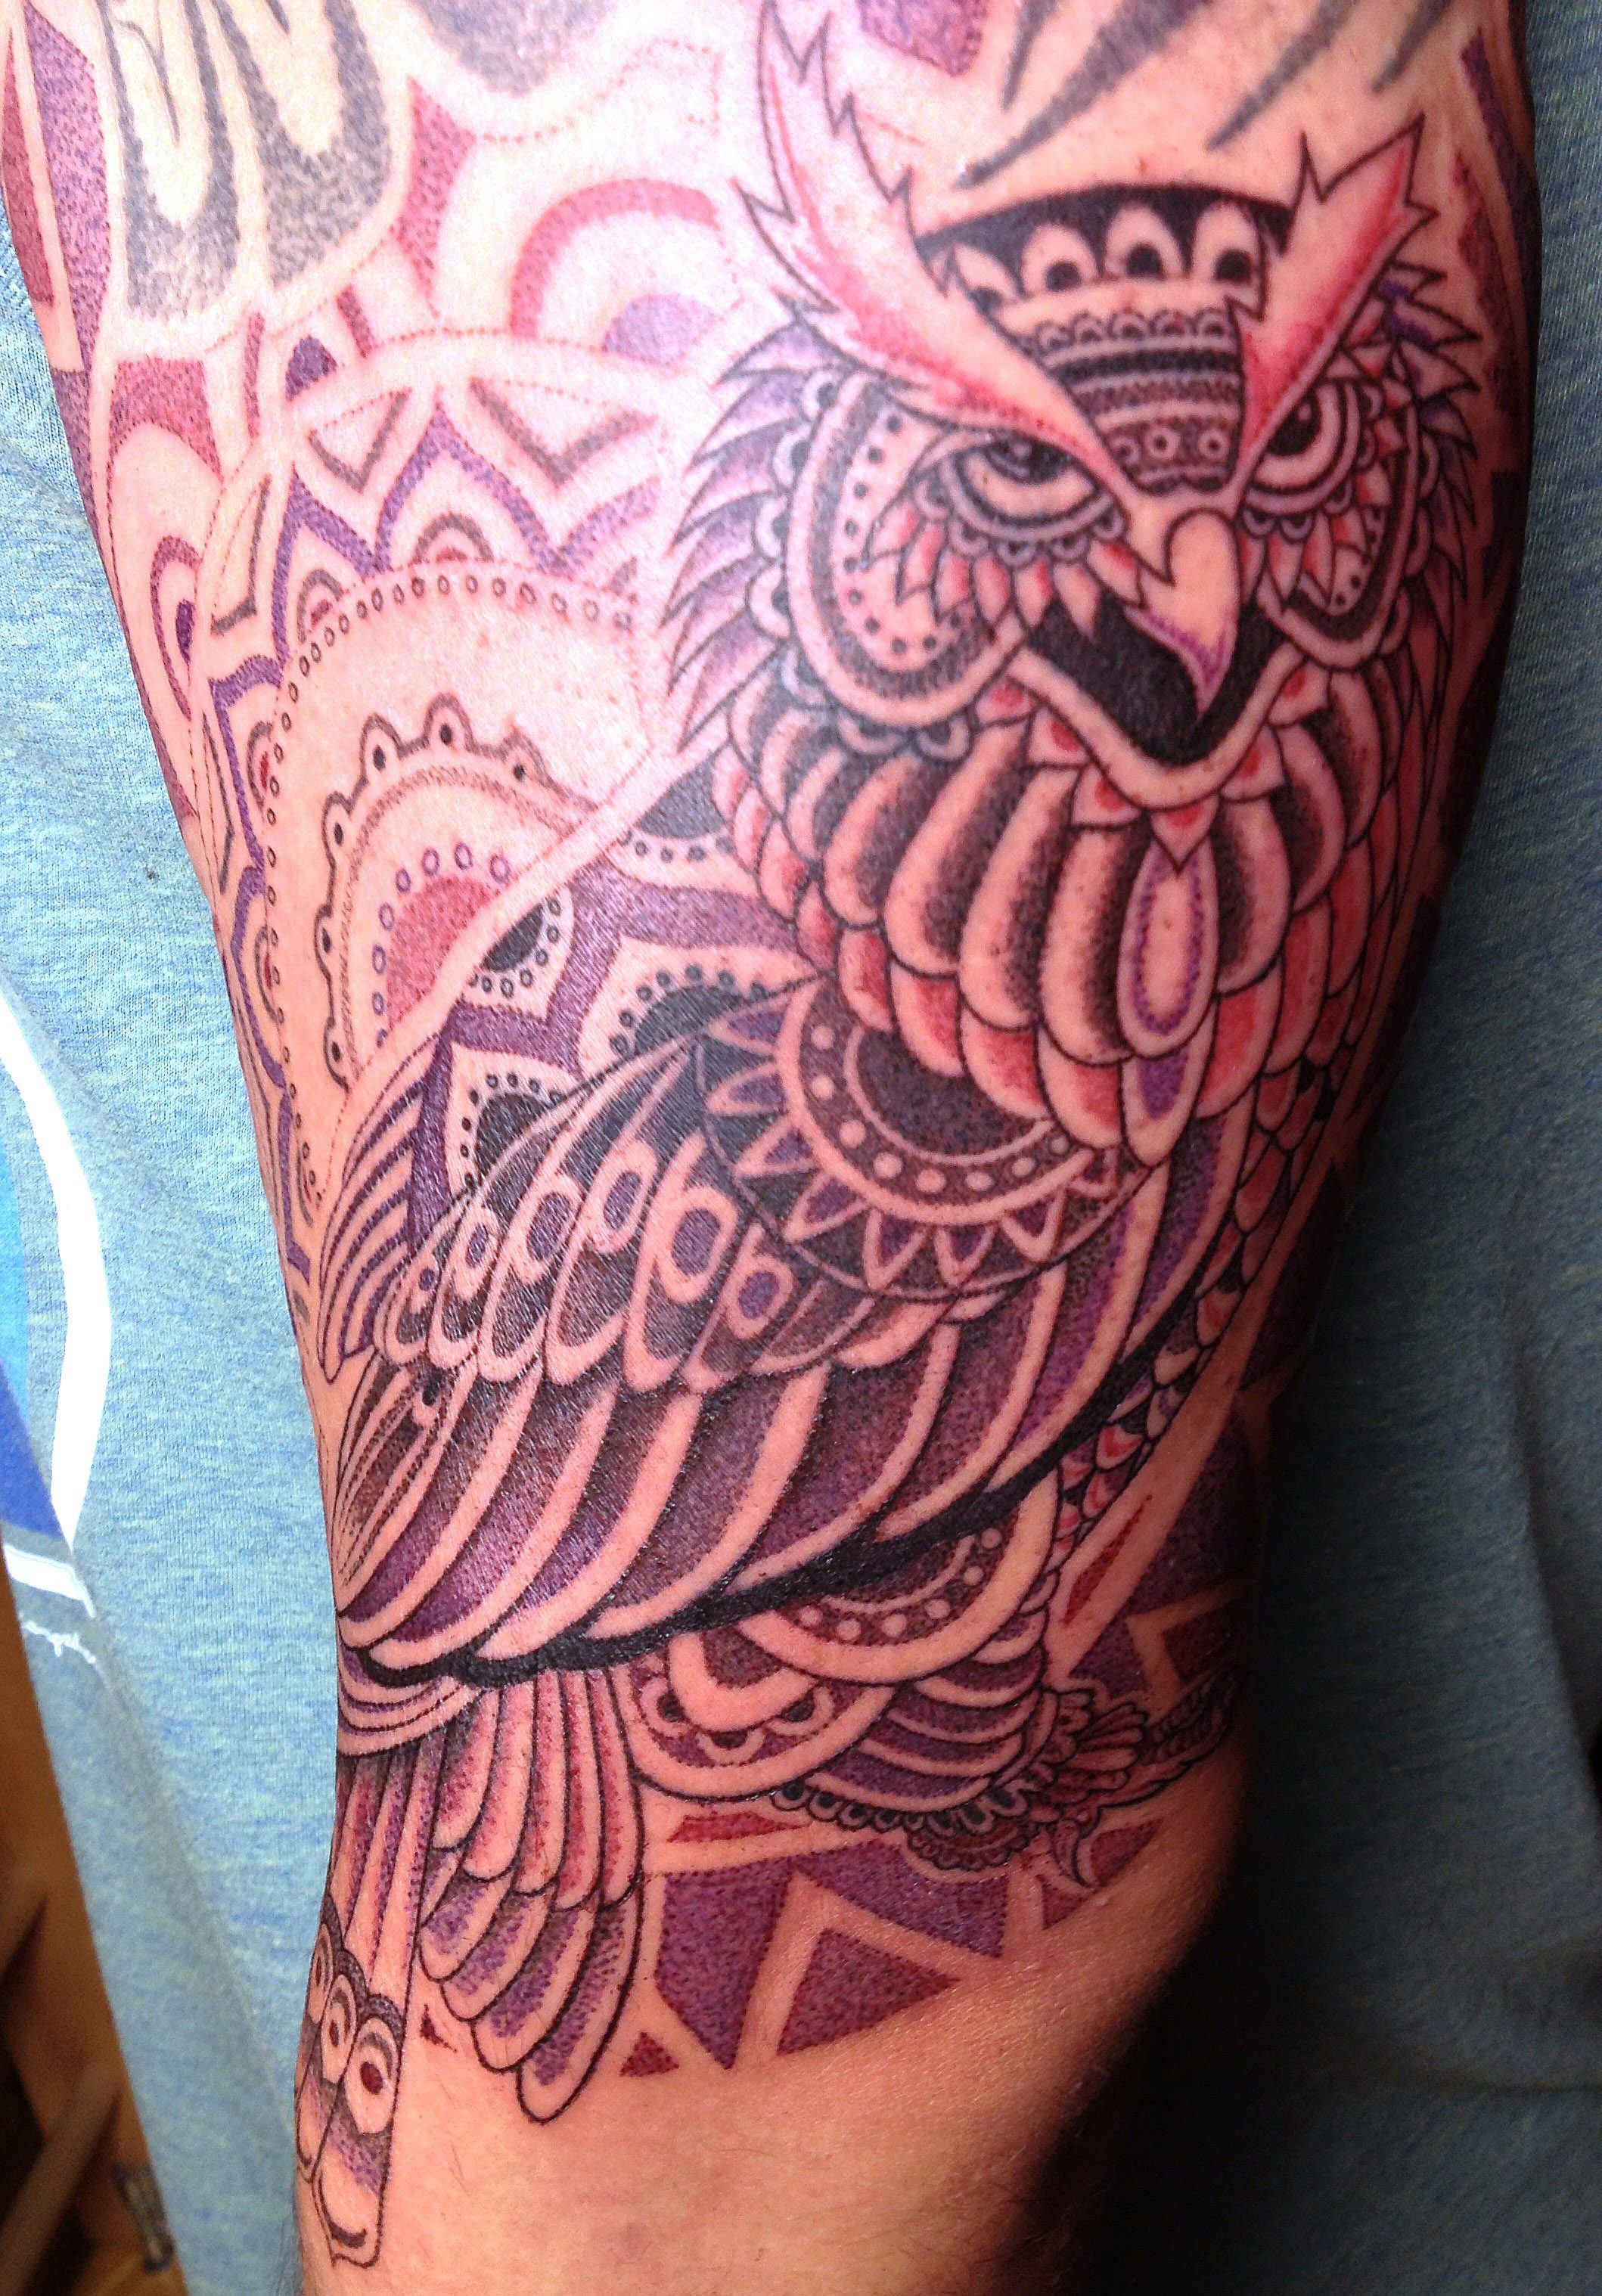 Tattoo arist Daemon Rowanchilde combines his experiences with different art mediums to create his own spiritual tribal style.